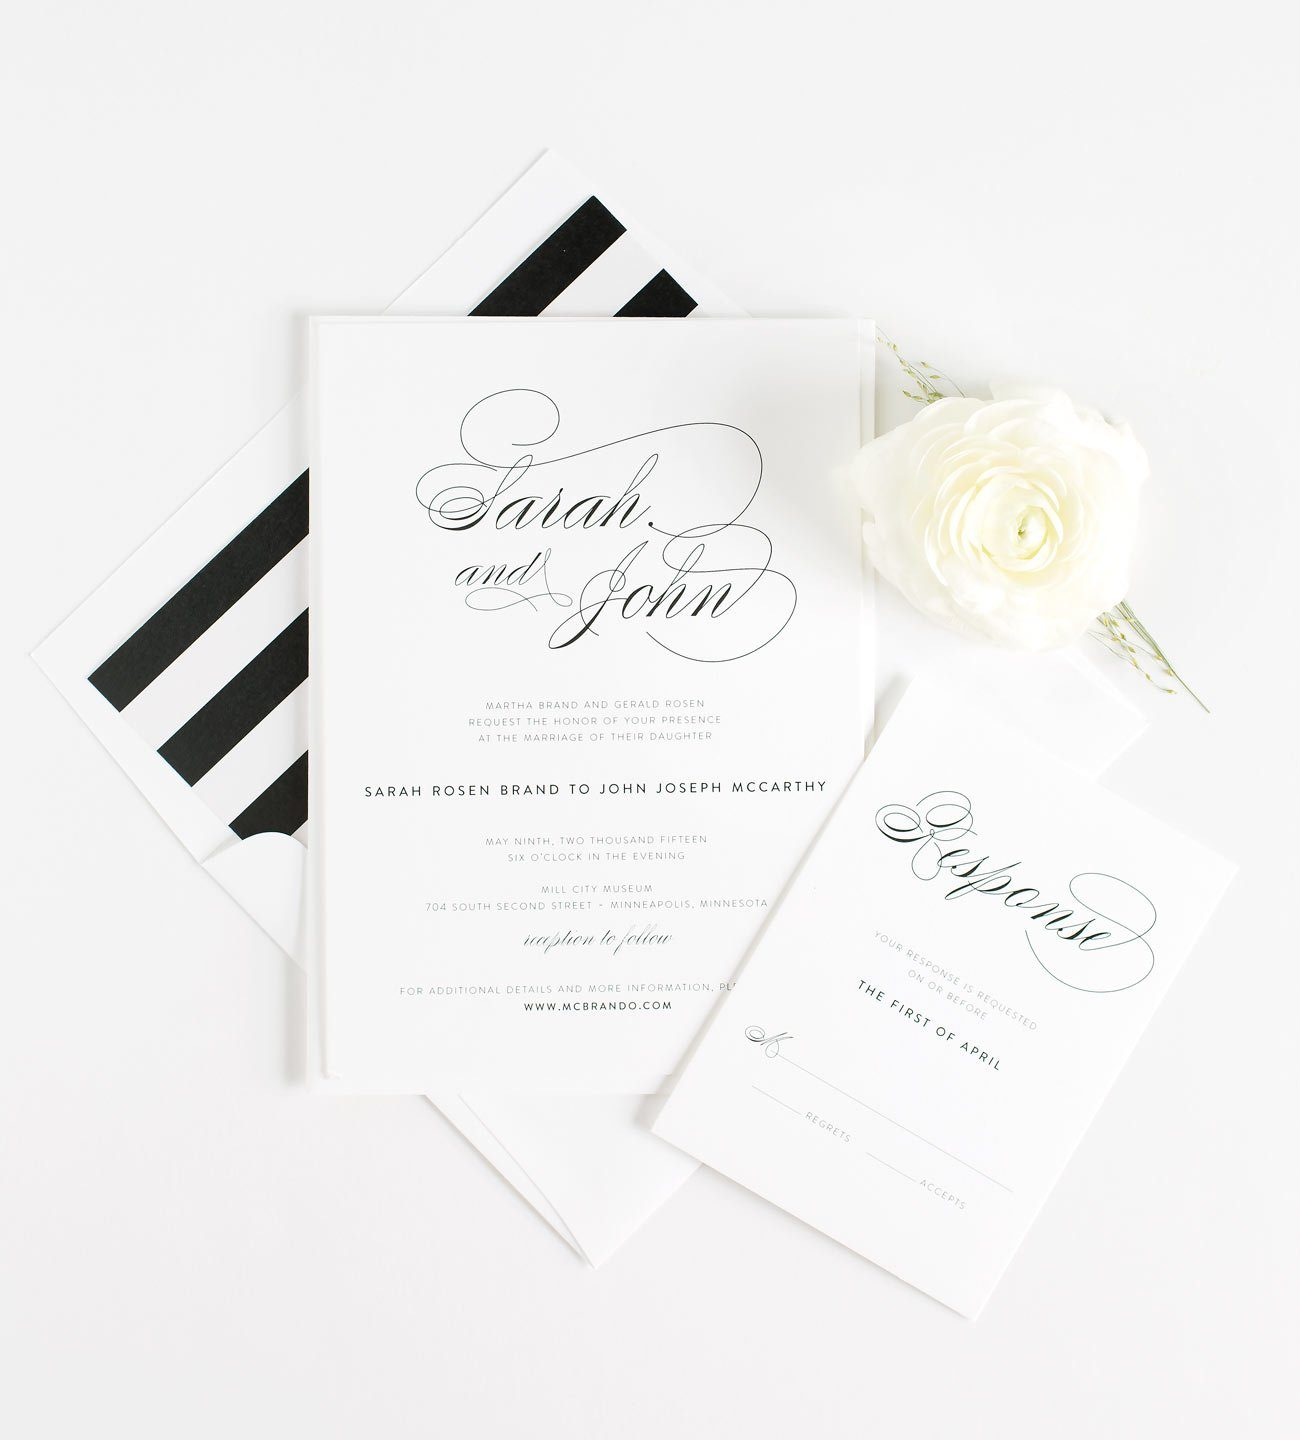 wedding invites sydney cbd - 100 images - melbourne skyline city ...